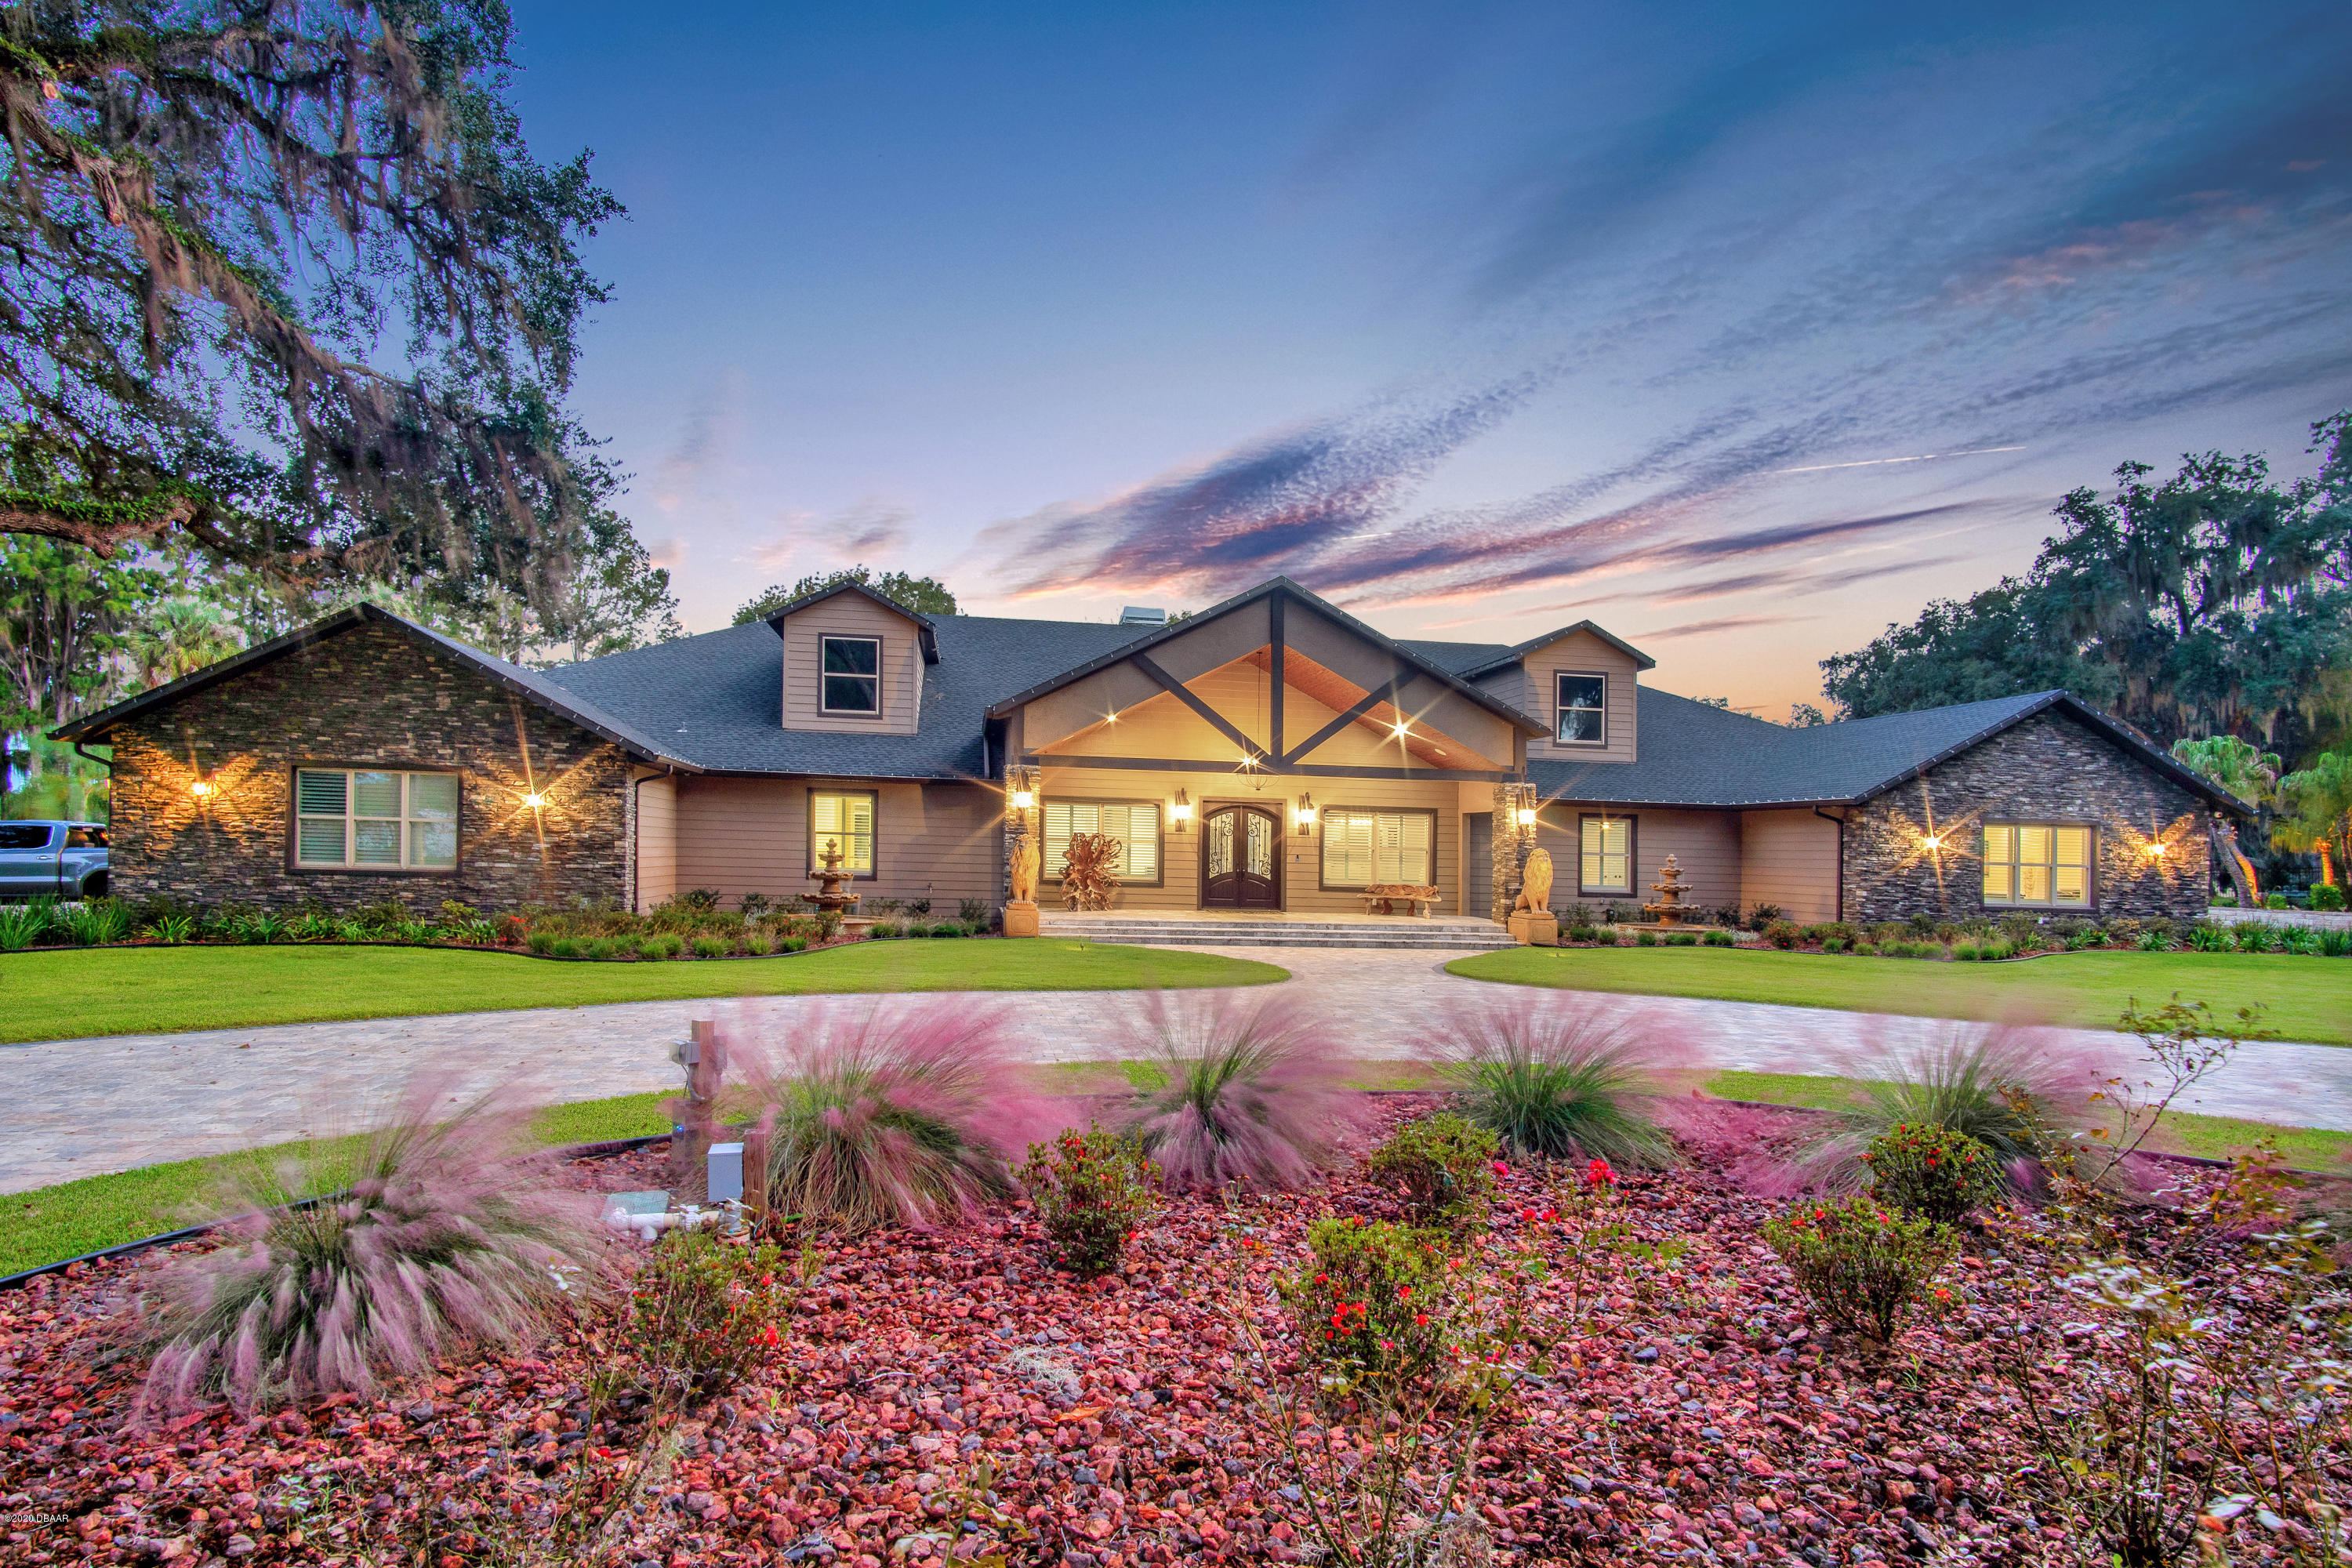 Photo of 7926 E SHANNON Court, Inverness, FL 34450